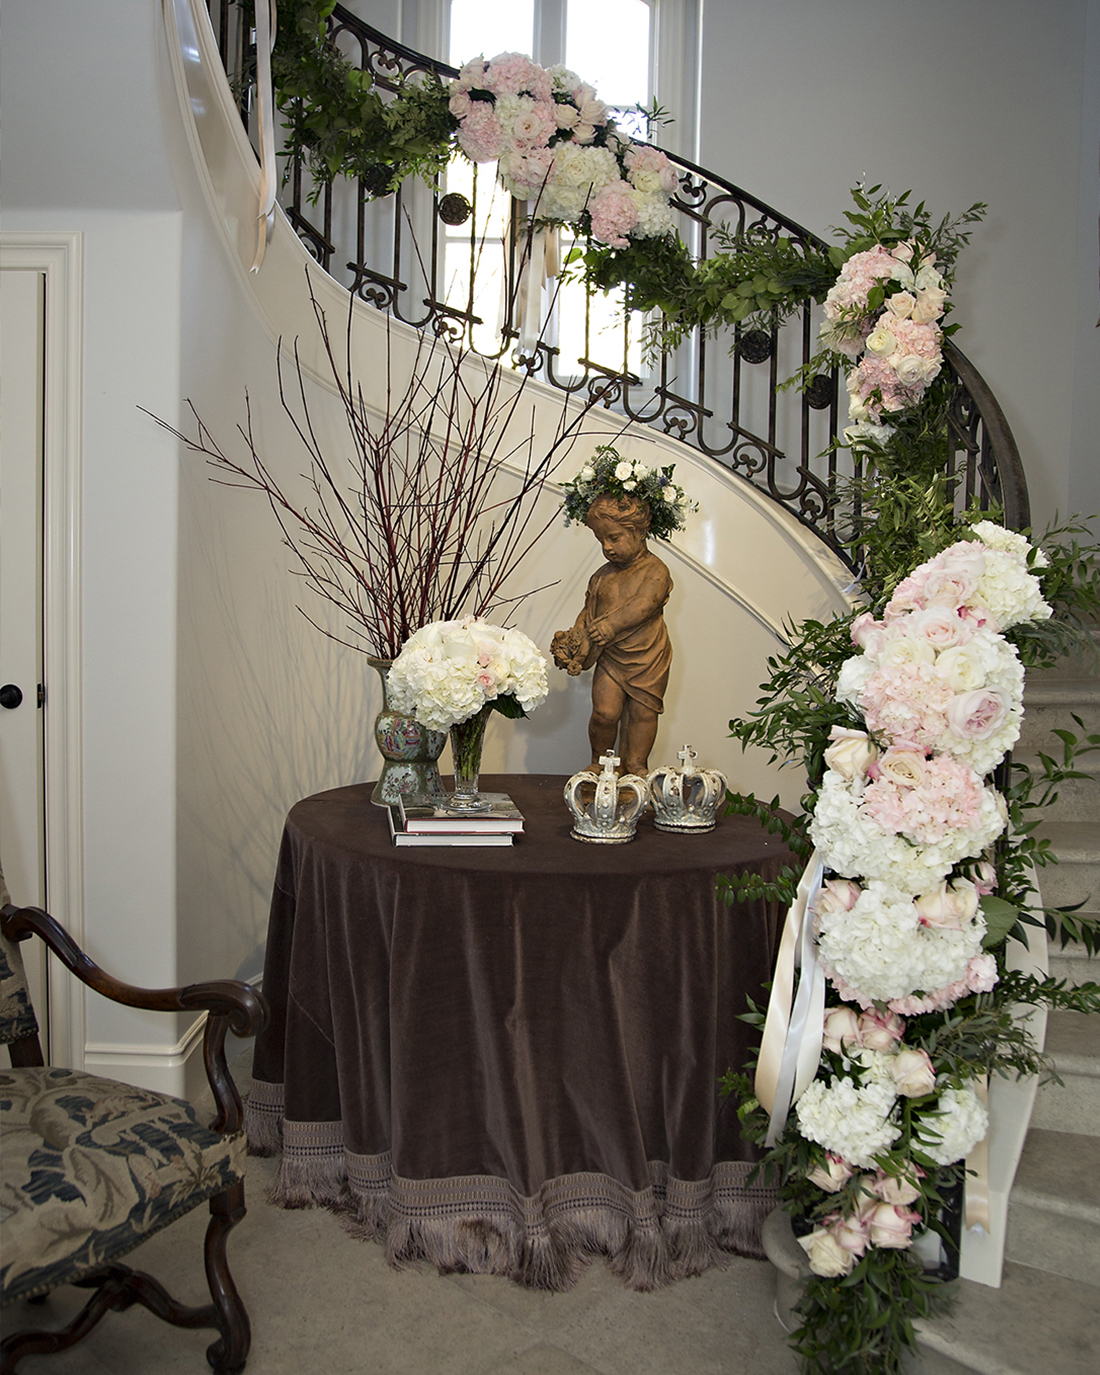 An image of a stairway railings decorated with light pink roses and white hydrangeas floral garland